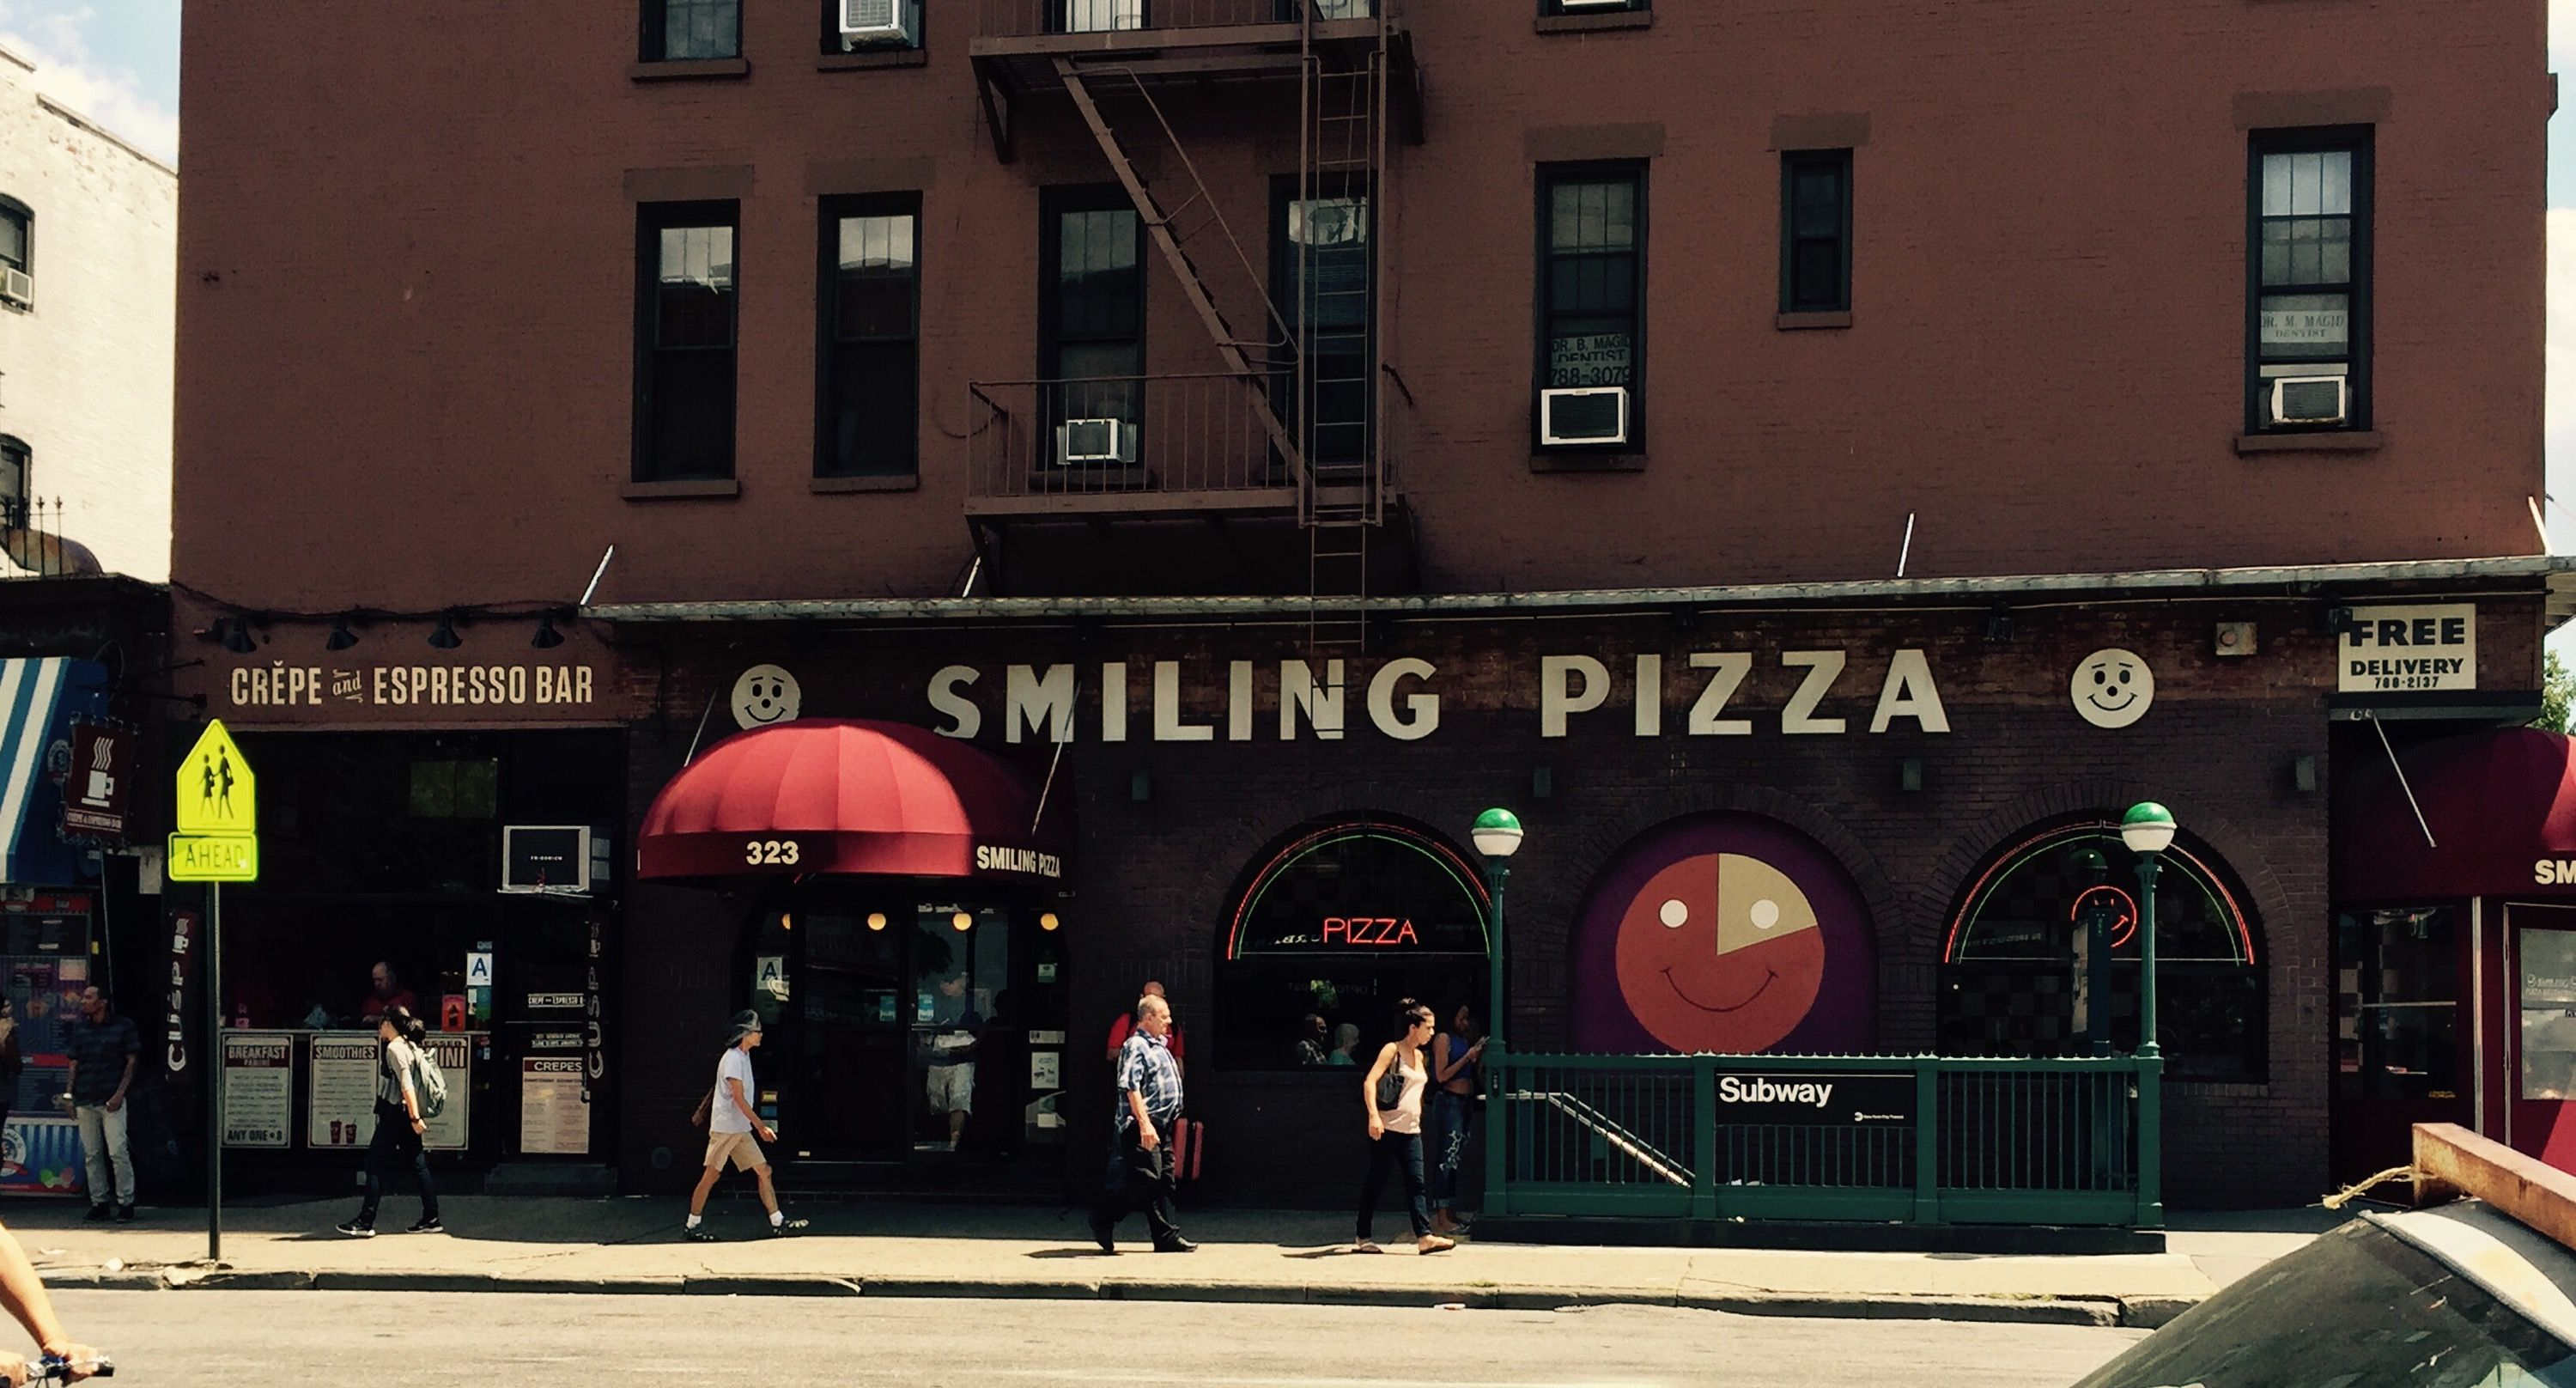 Smiling Pizza Pizza, Pizza delivery, Park slope brooklyn